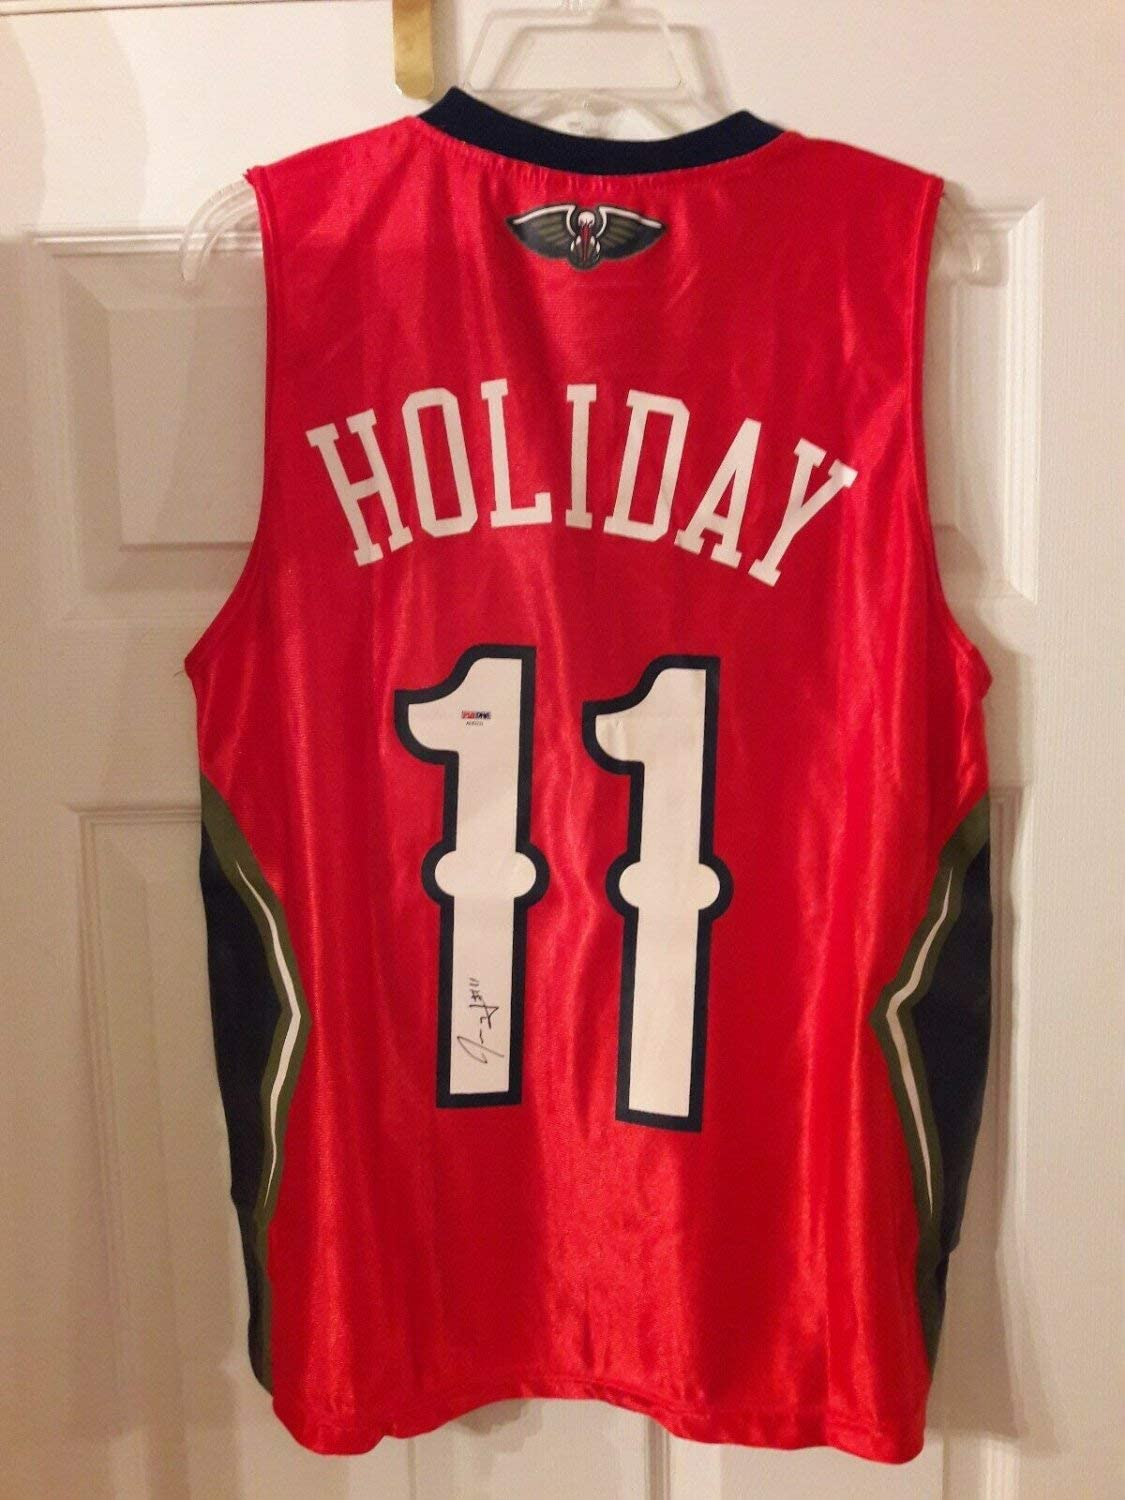 Jrue Holiday Autographed Signed New Orleans Pelicans Sga Jersey Size Youth Xl PSA/DNA